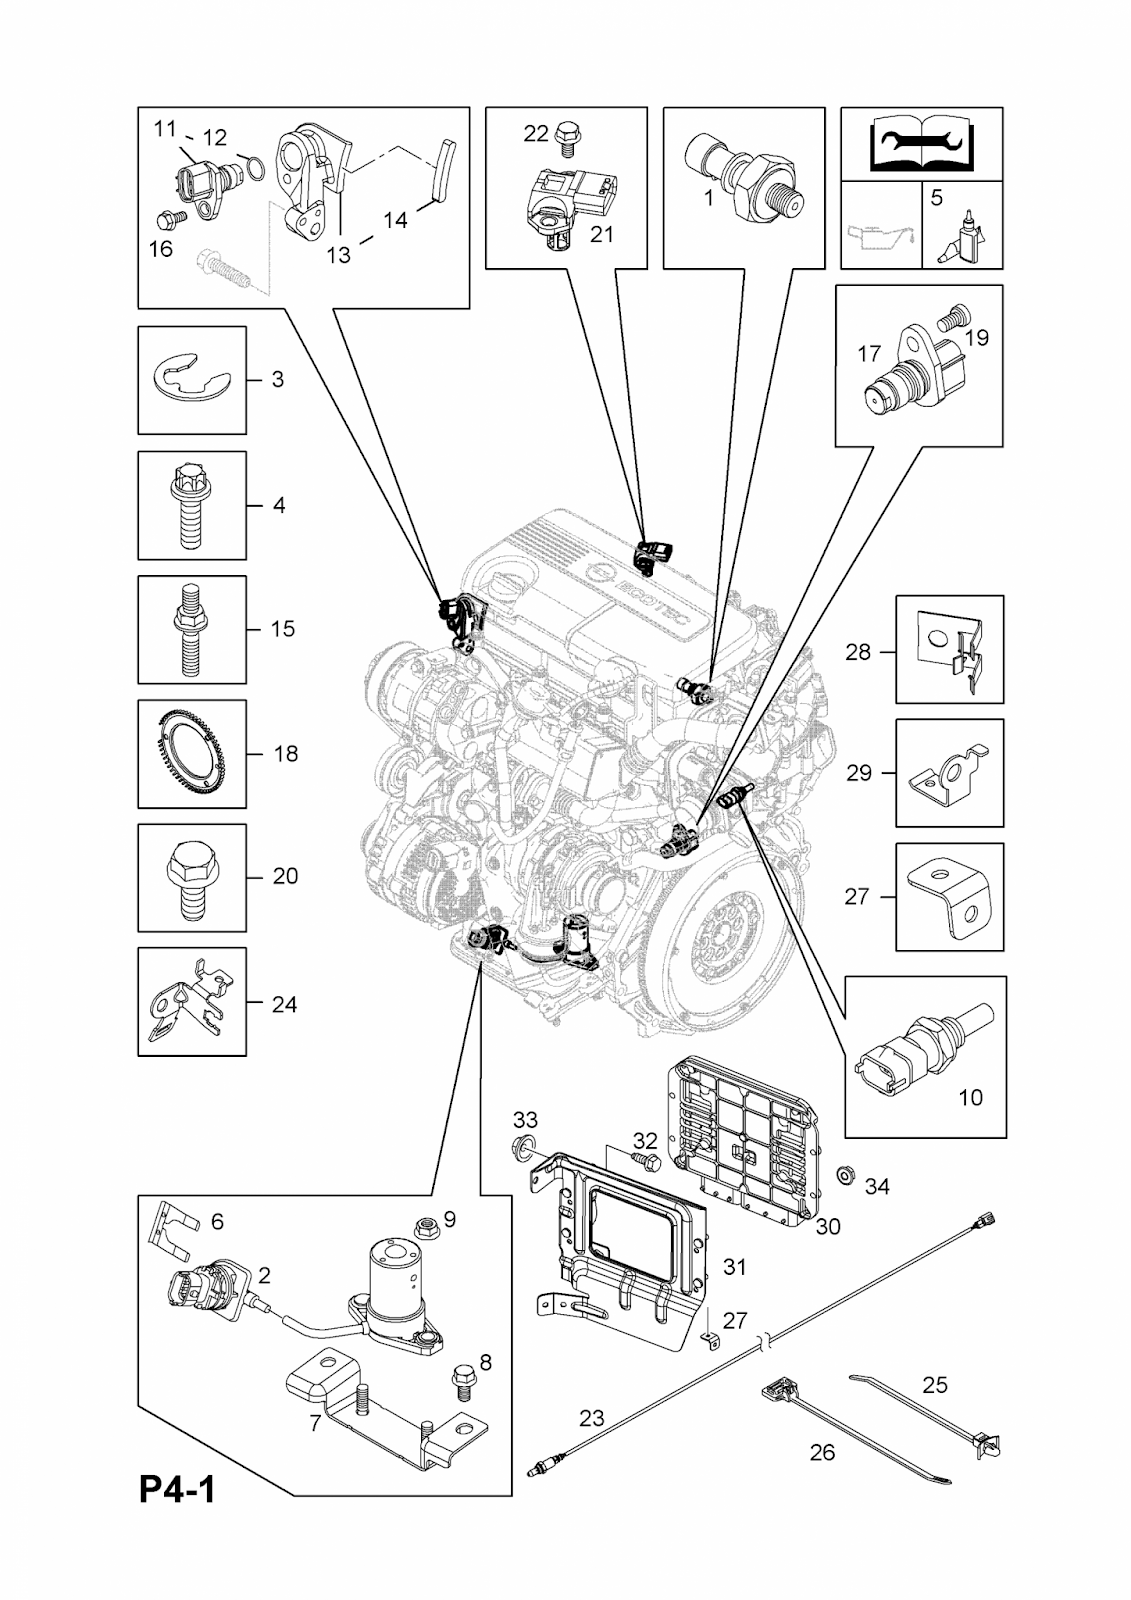 opel engine schematic | printable worksheets and activities for teachers,  parents, tutors and homeschool families  indymoves.org